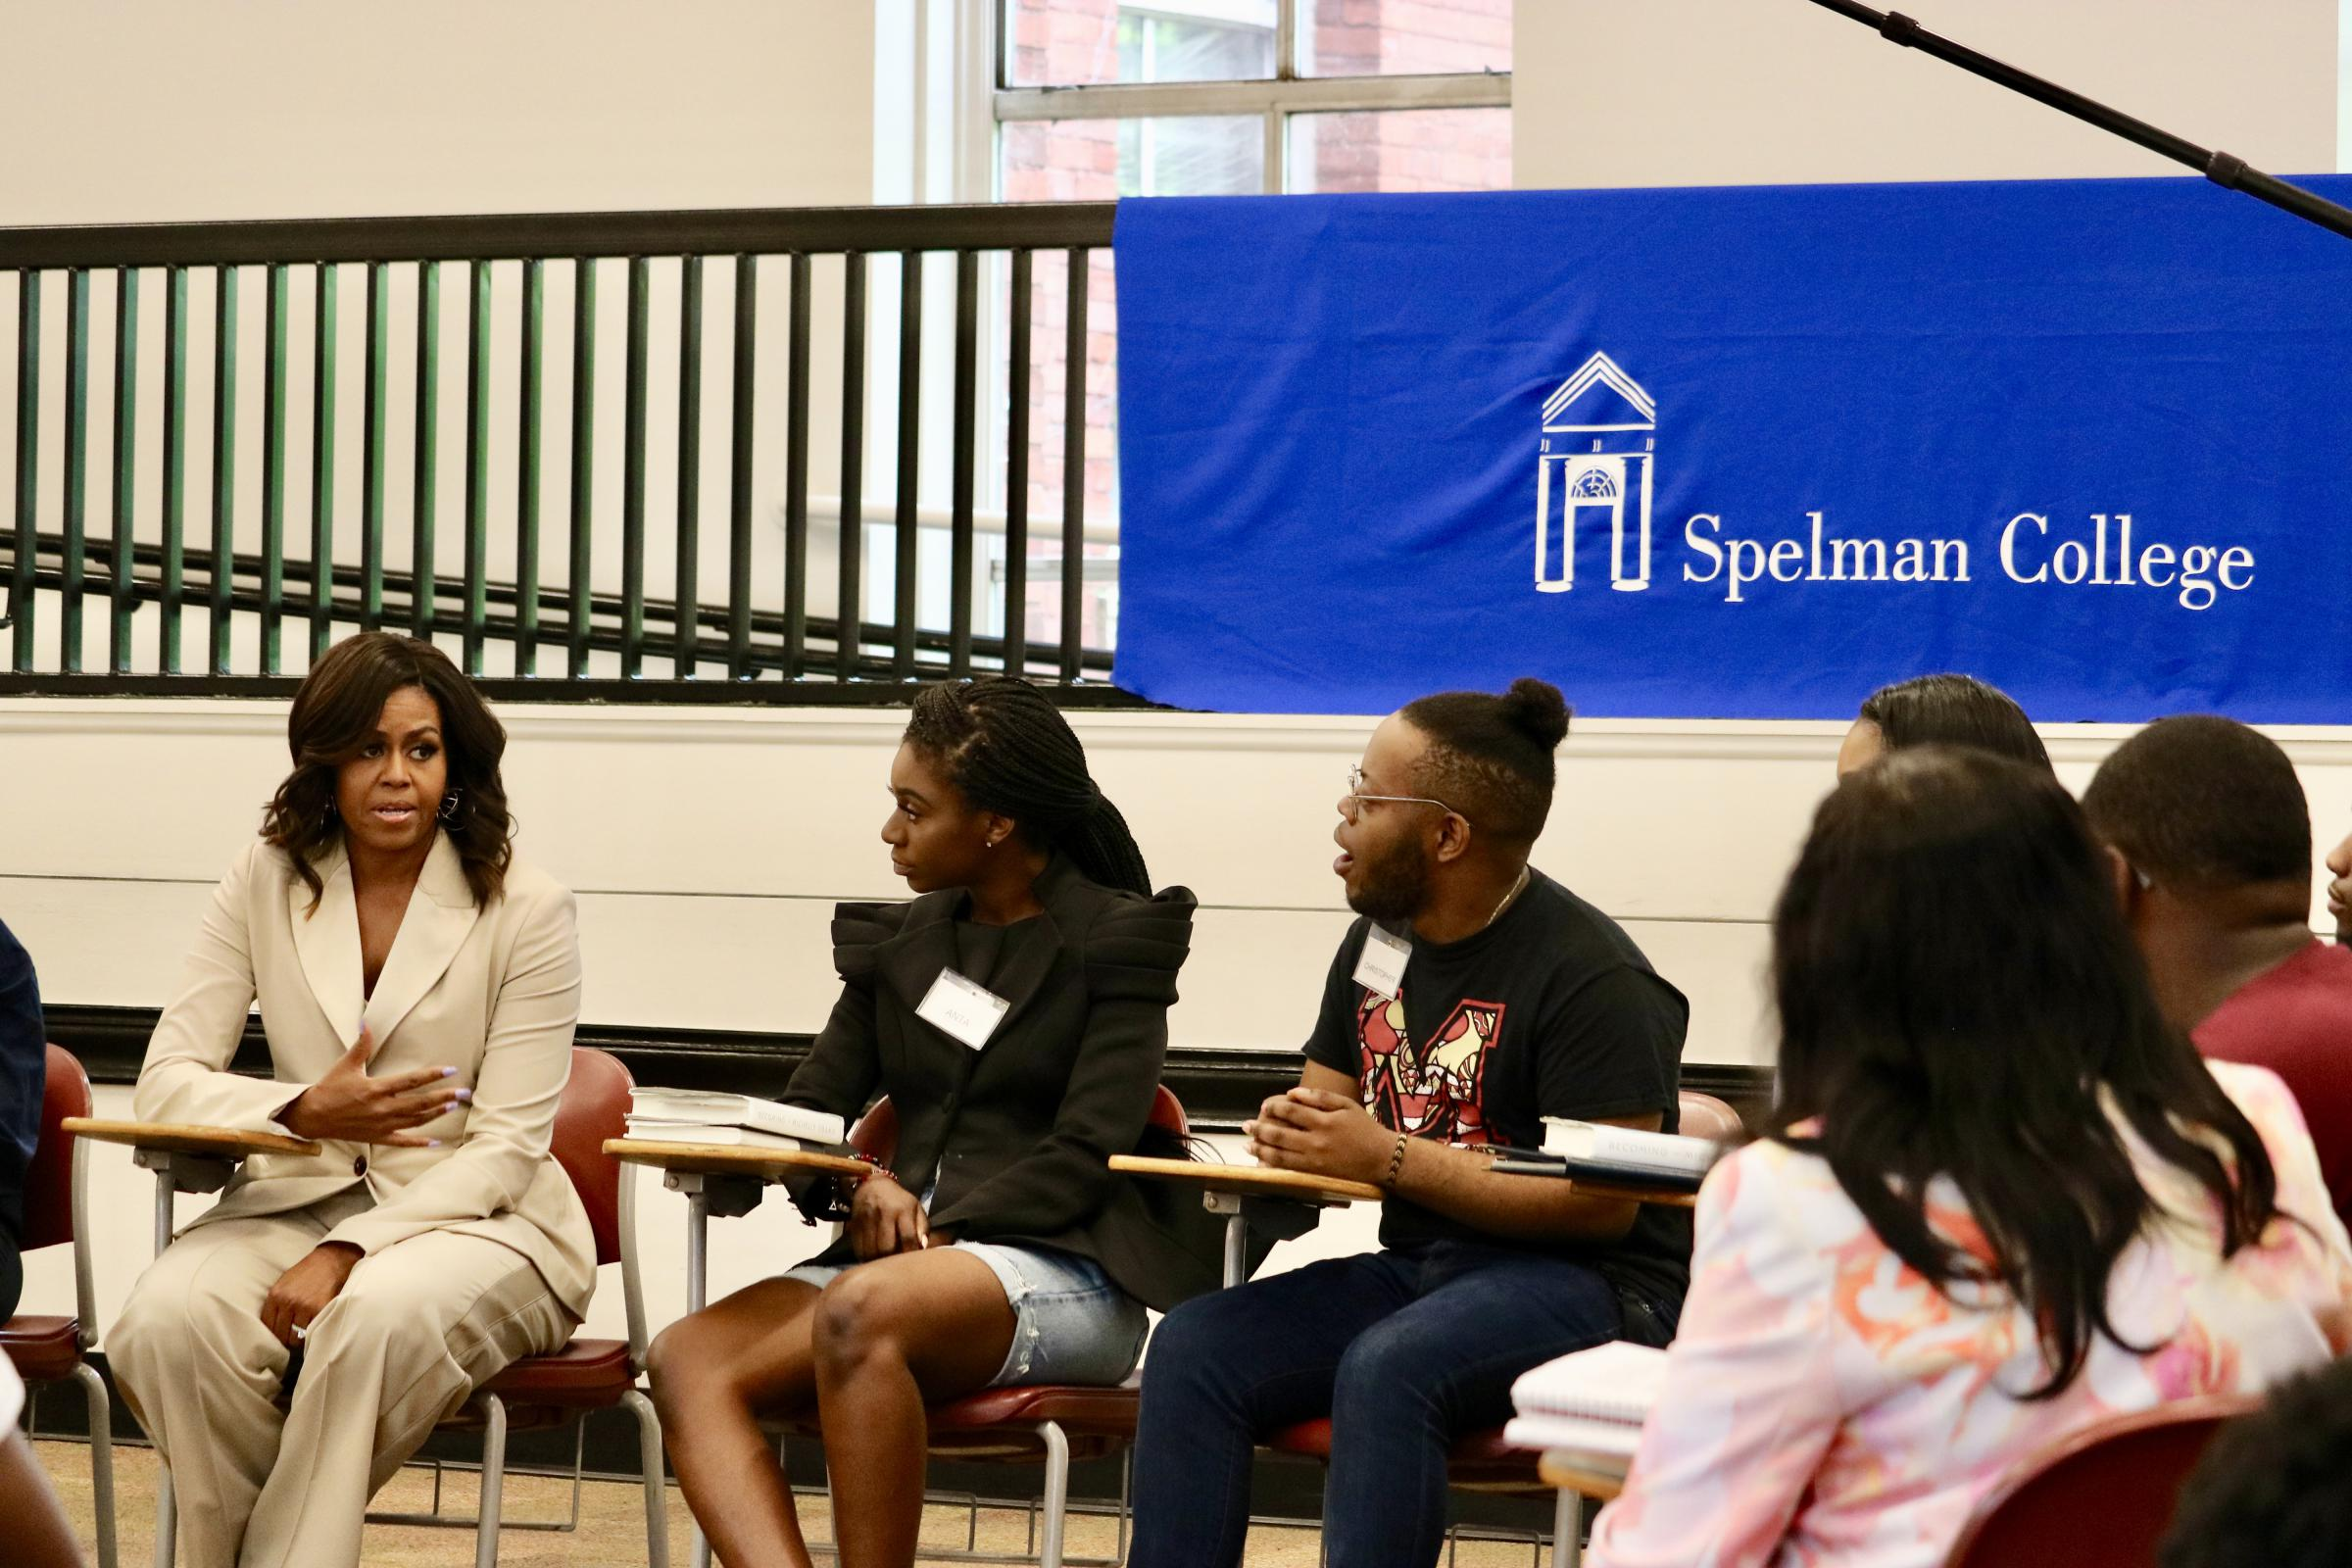 Michelle Obama Surprises Spelman Students Who Studied 'Becoming